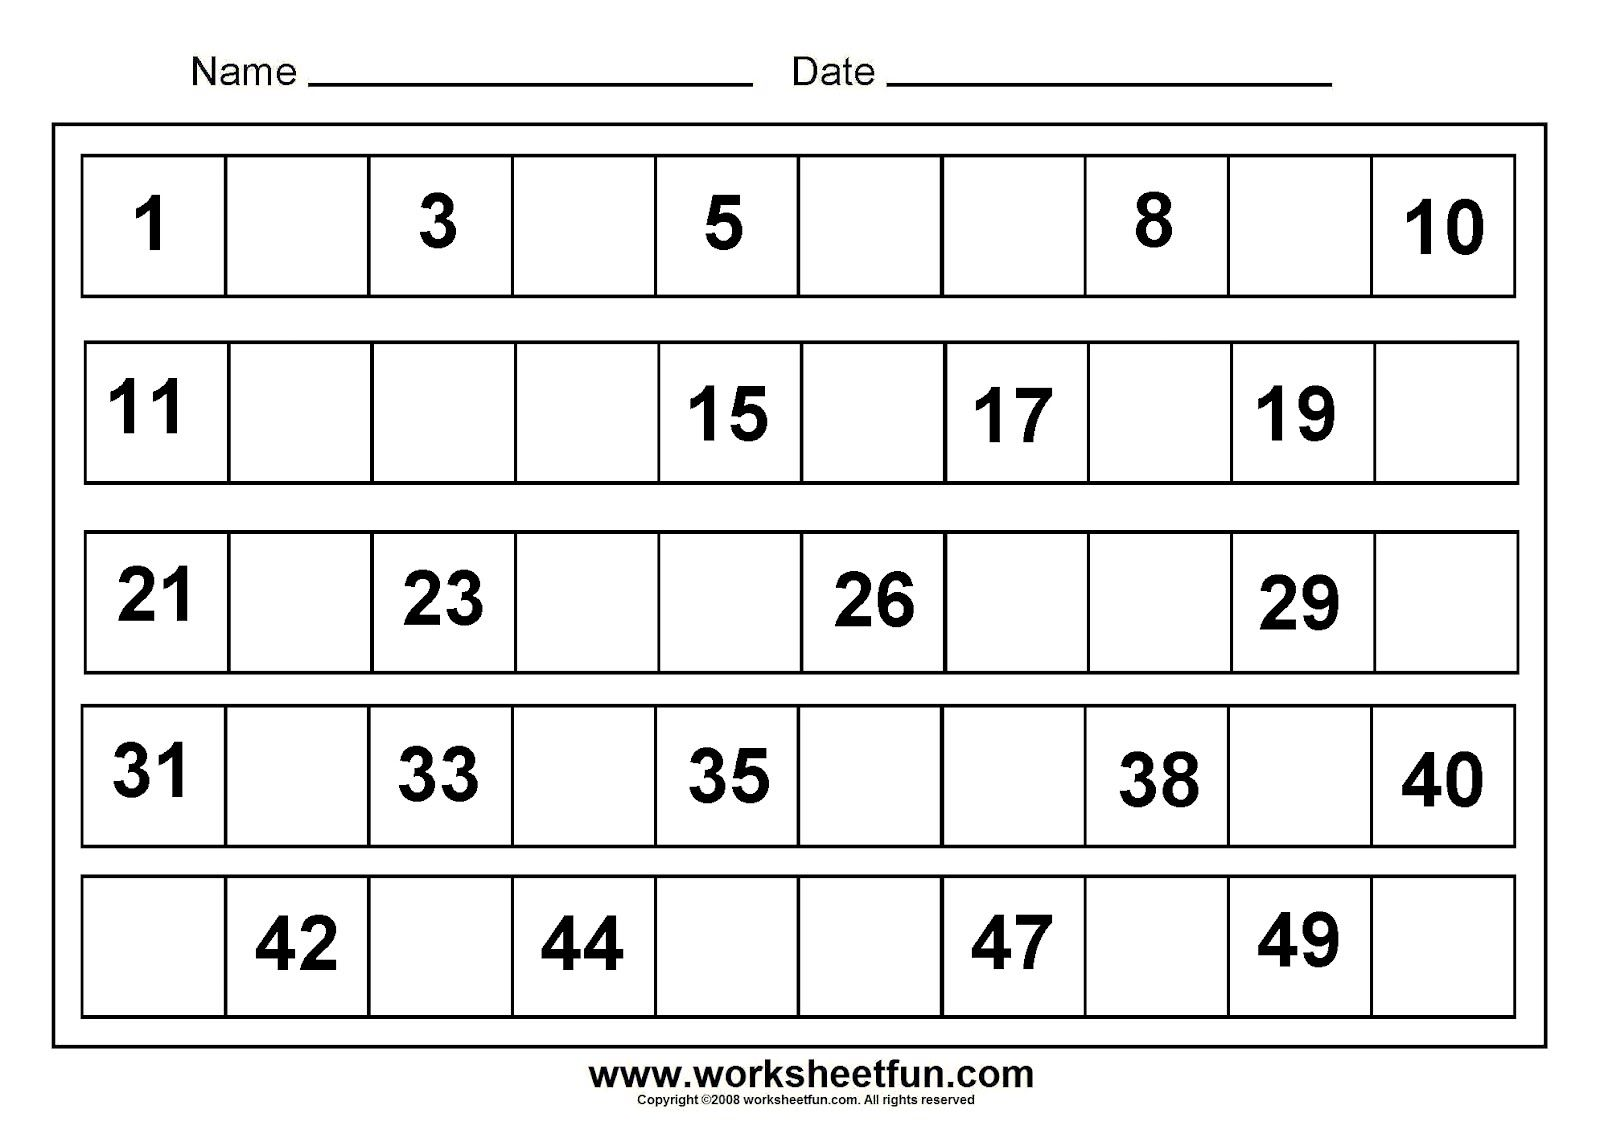 Worksheets Kindergarten Worksheets Free Printable worksheet kindergarten printable activities free printables for math worksheets for